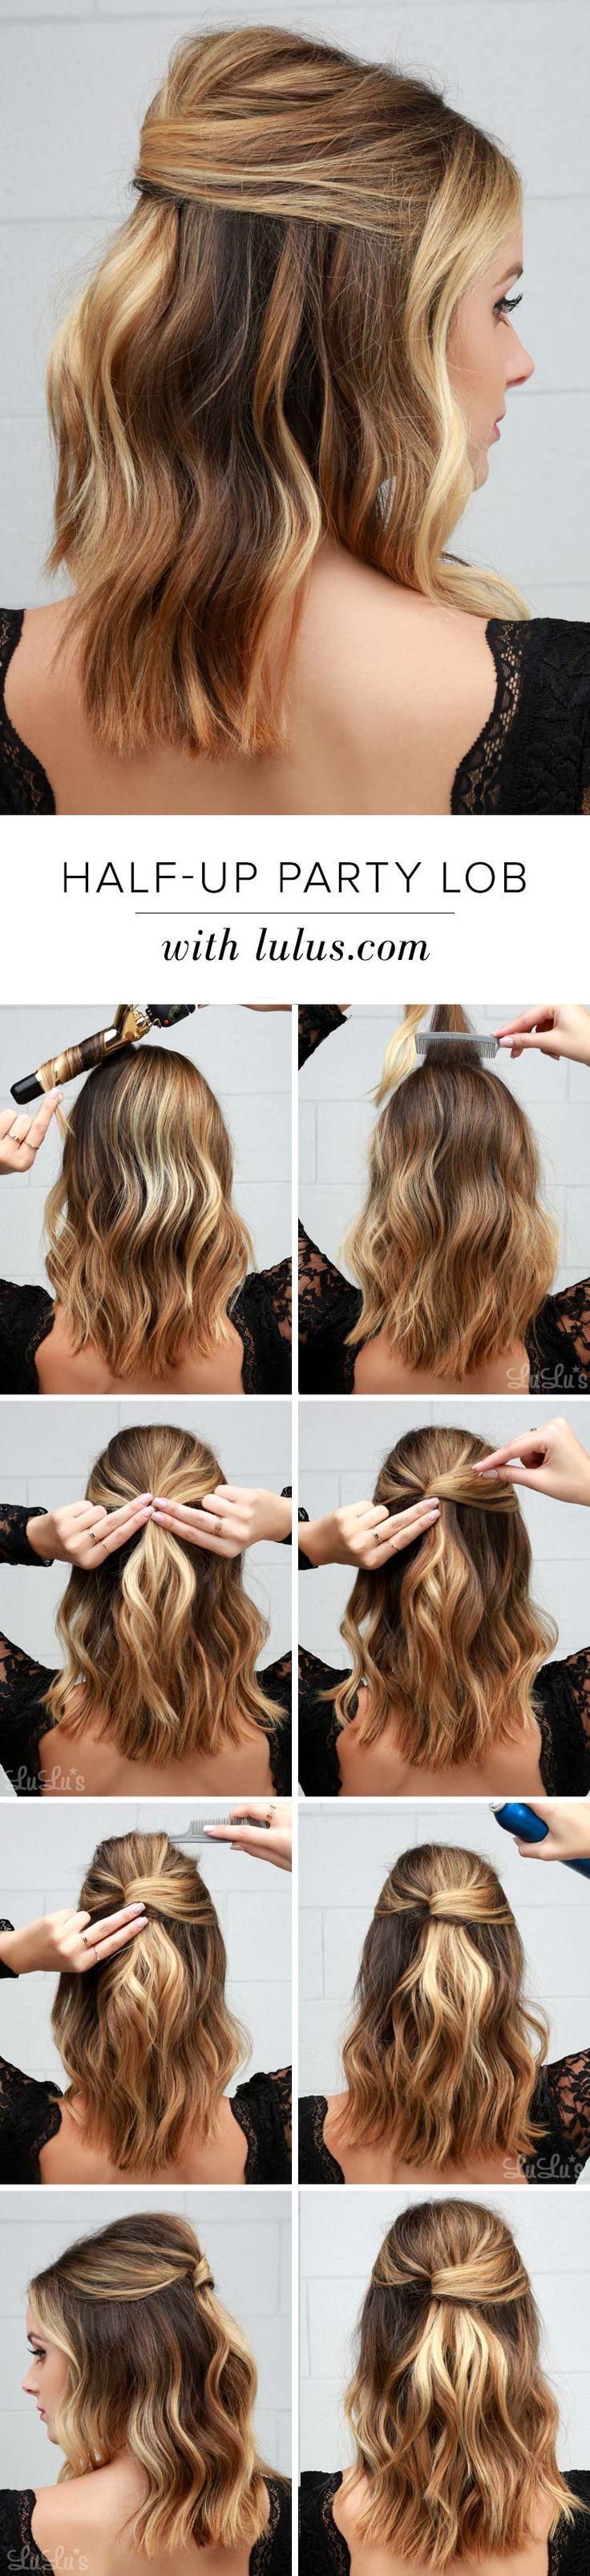 50 best Hairstyles images on Pinterest